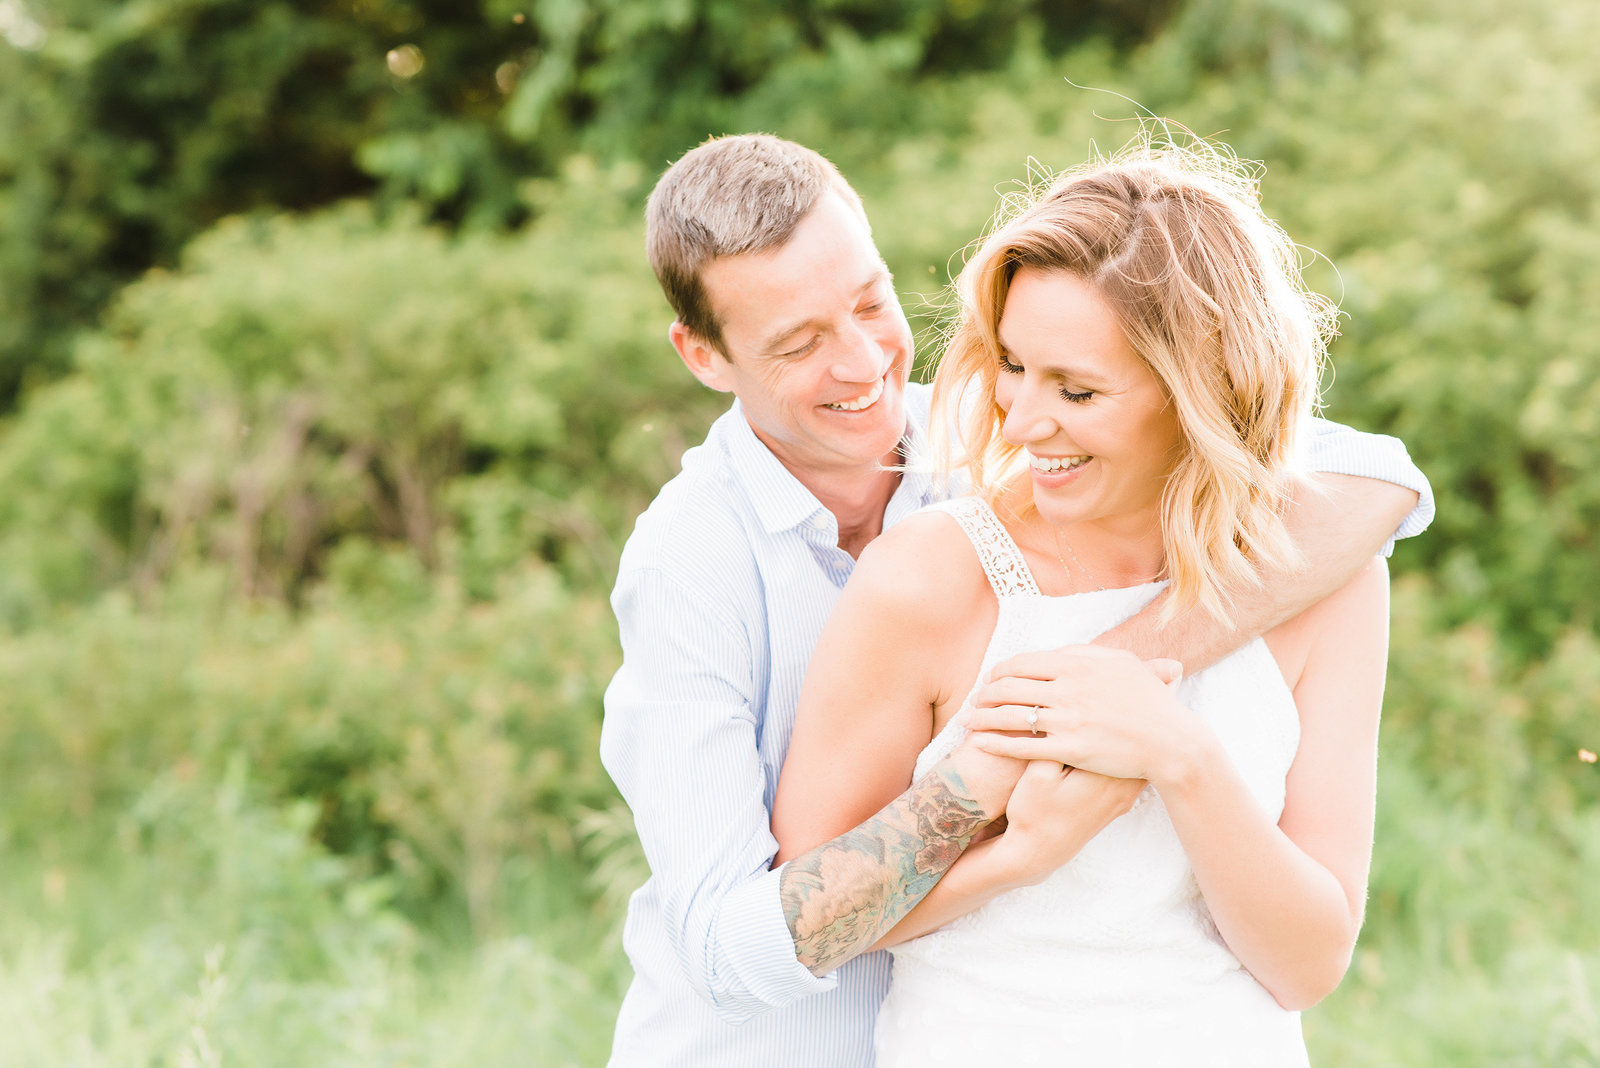 Mississippi-pearl-photography-southern-california-wedding-photographer-sundrenched-laughing-couple